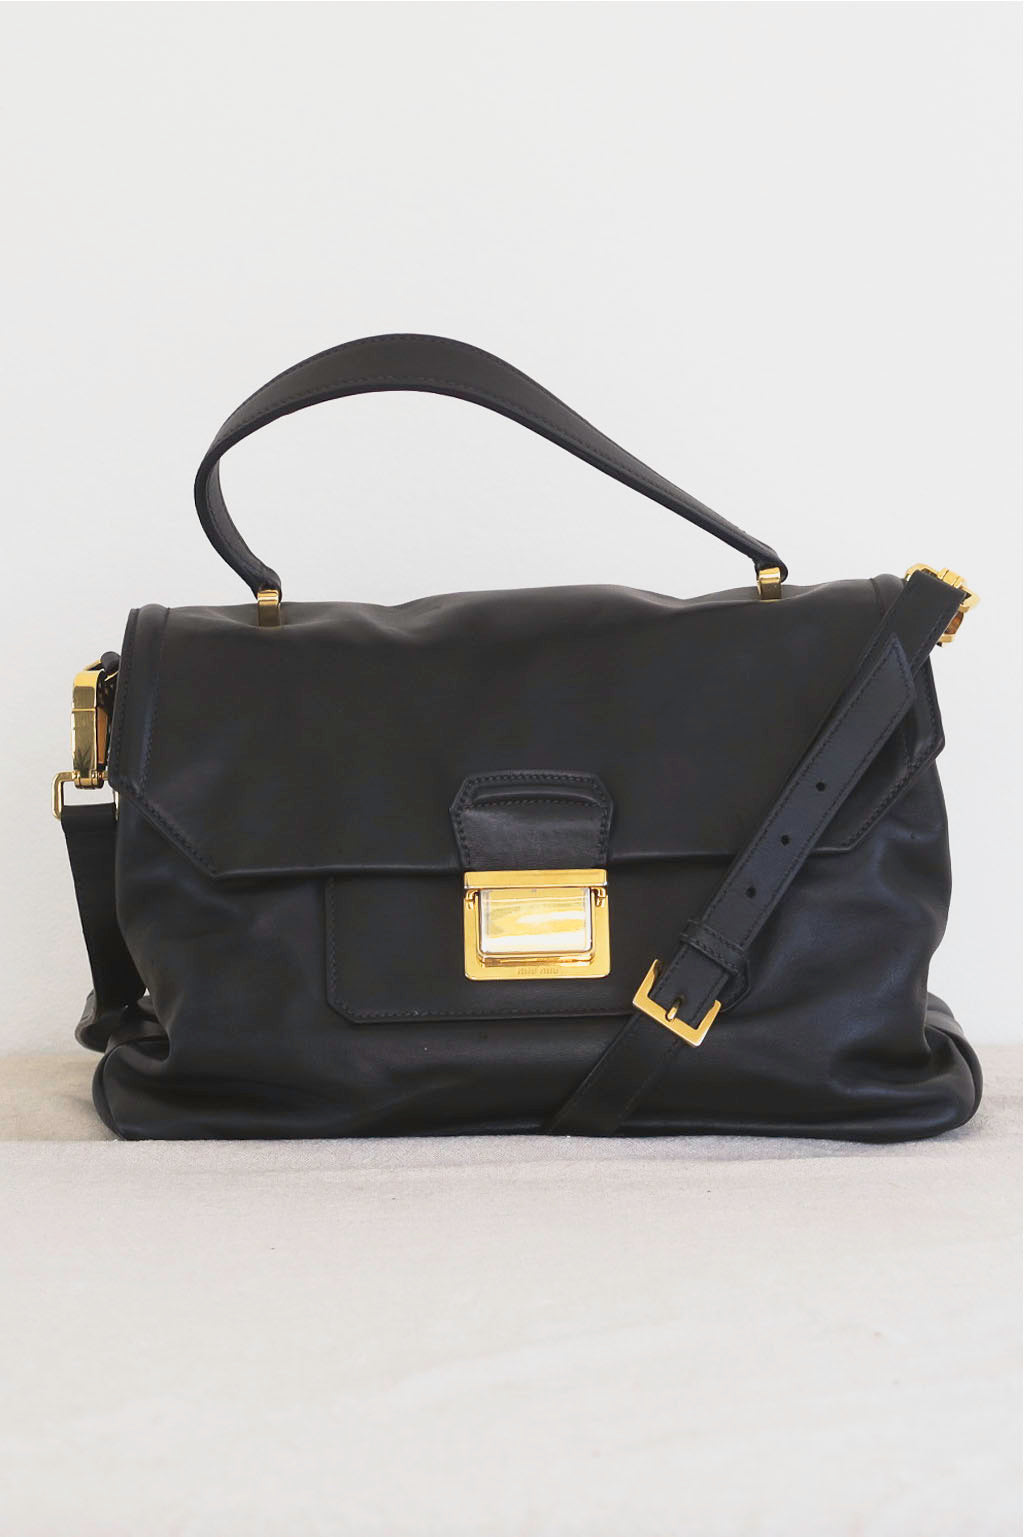 Miu Miu Black Leather Bag